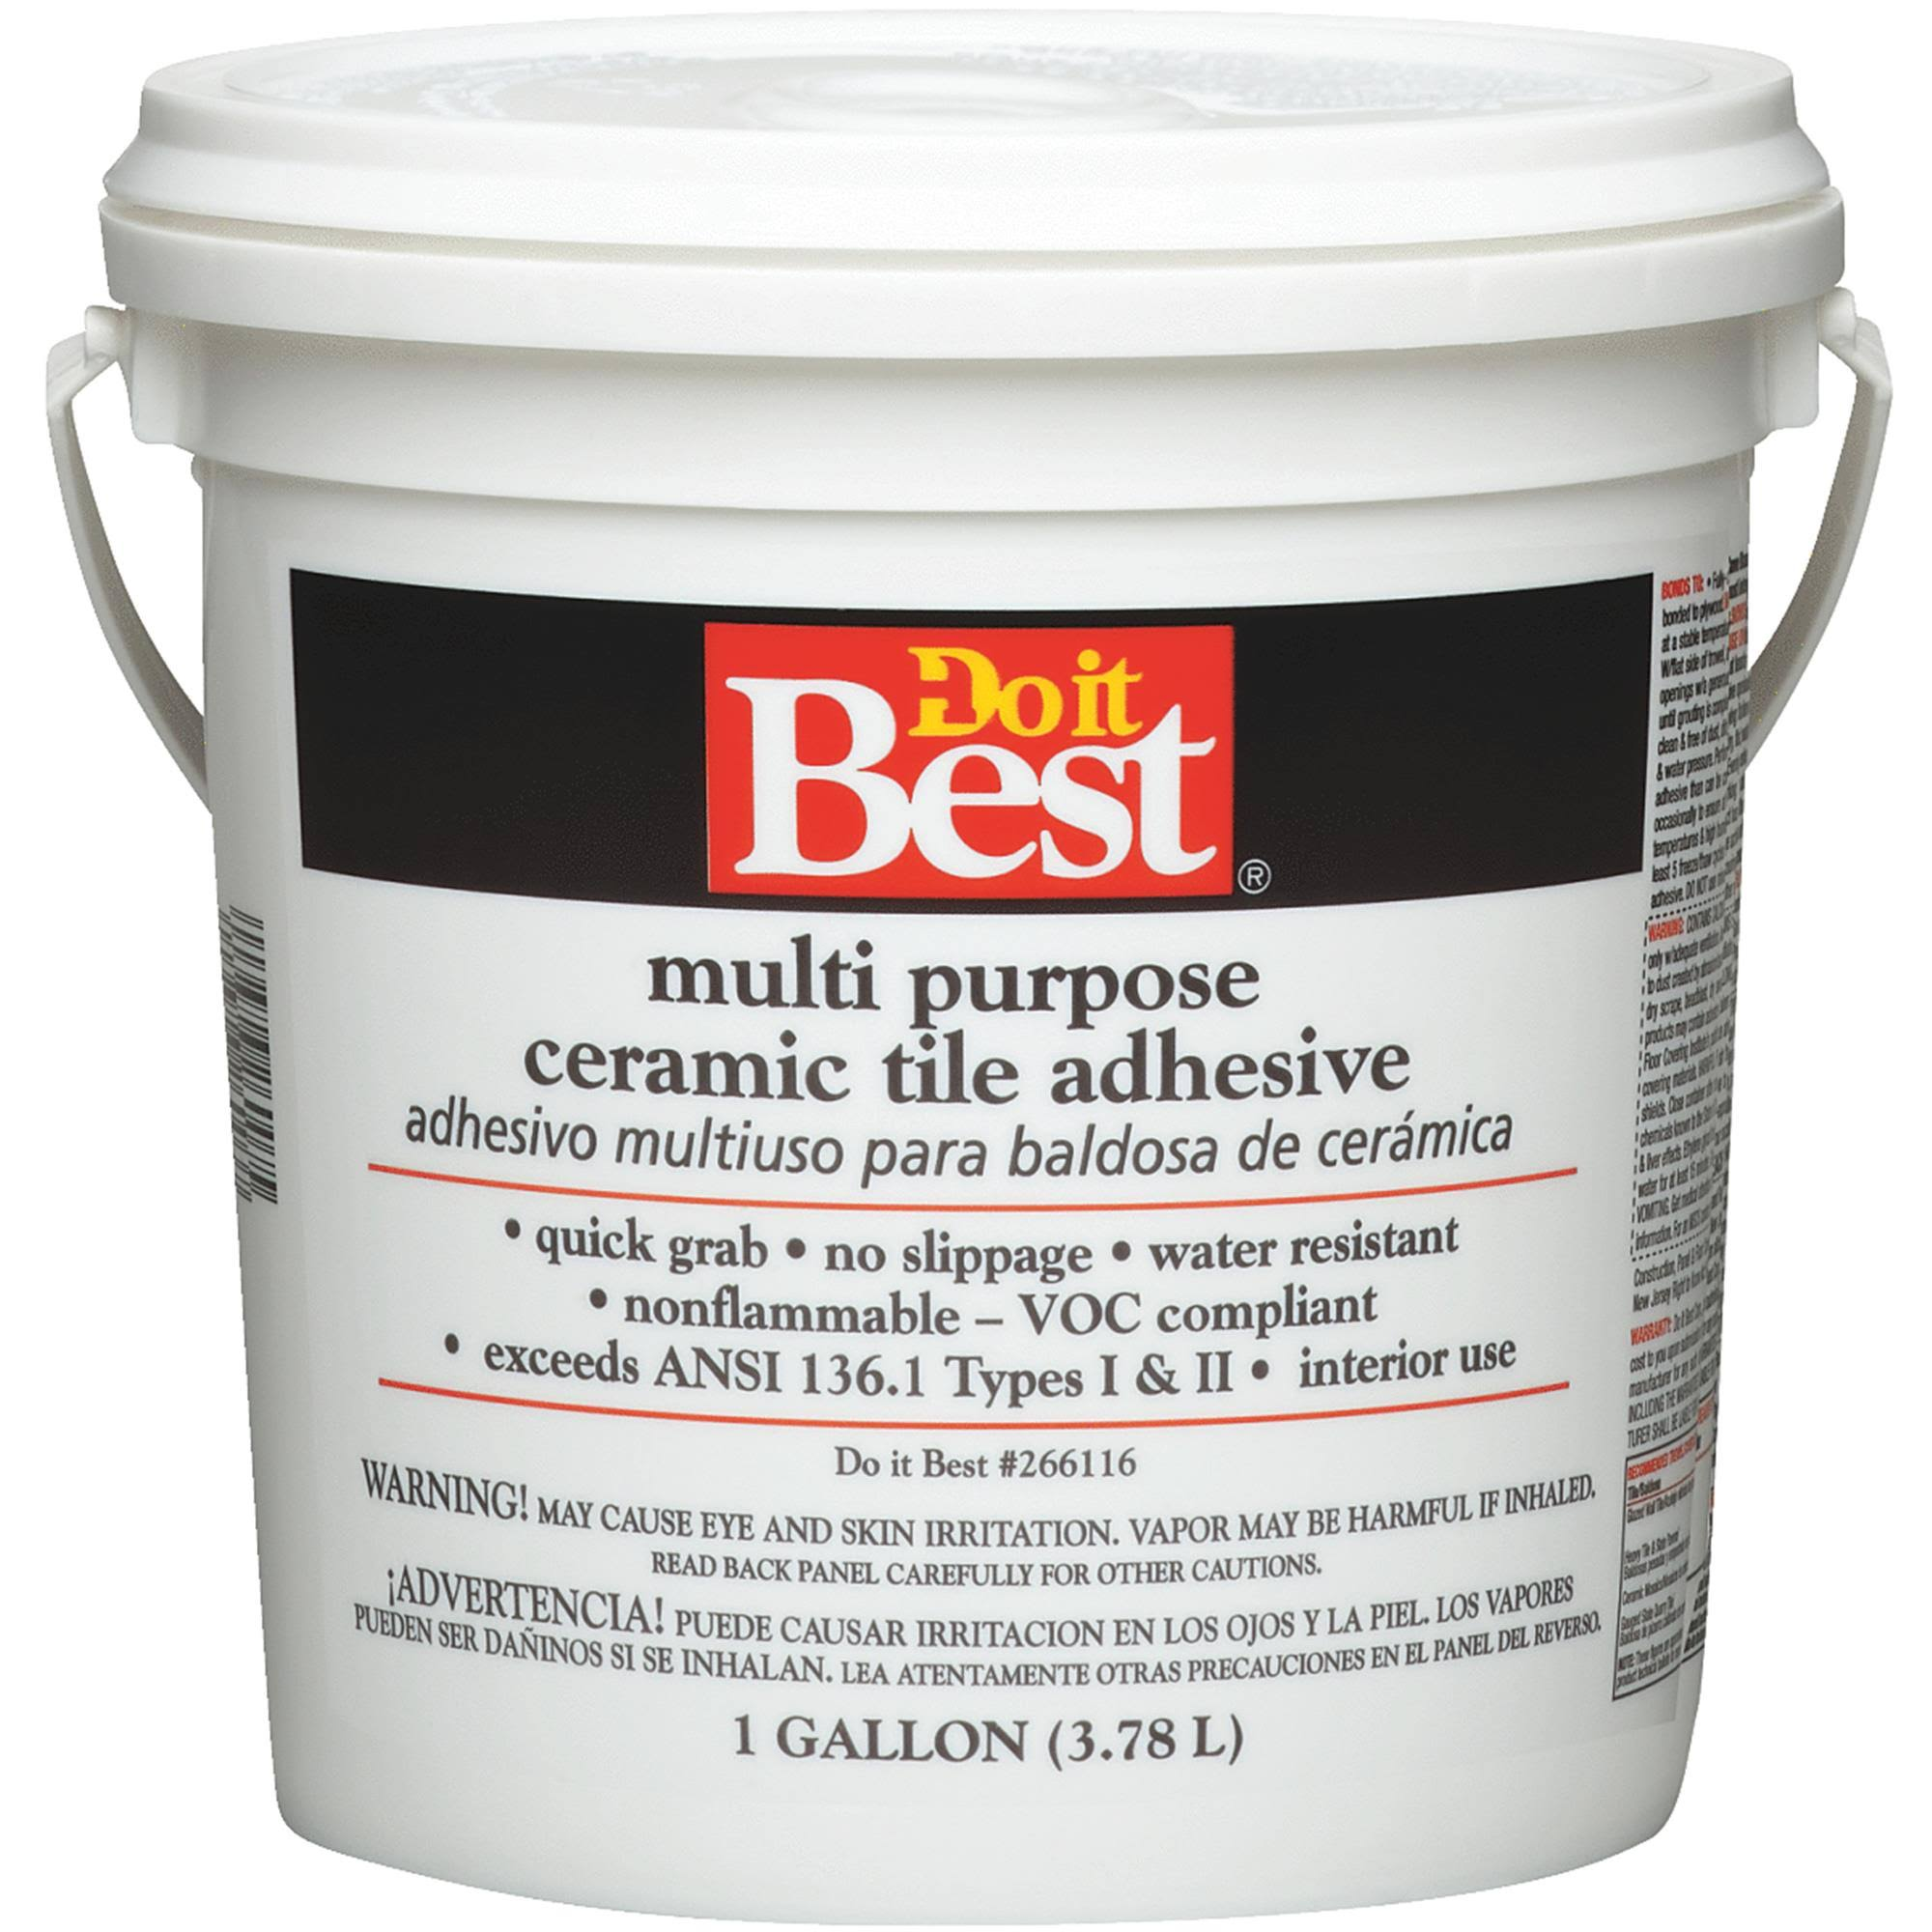 Do It Best Multi Purpose Ceramic Tile Adhesive - 1 Gallon